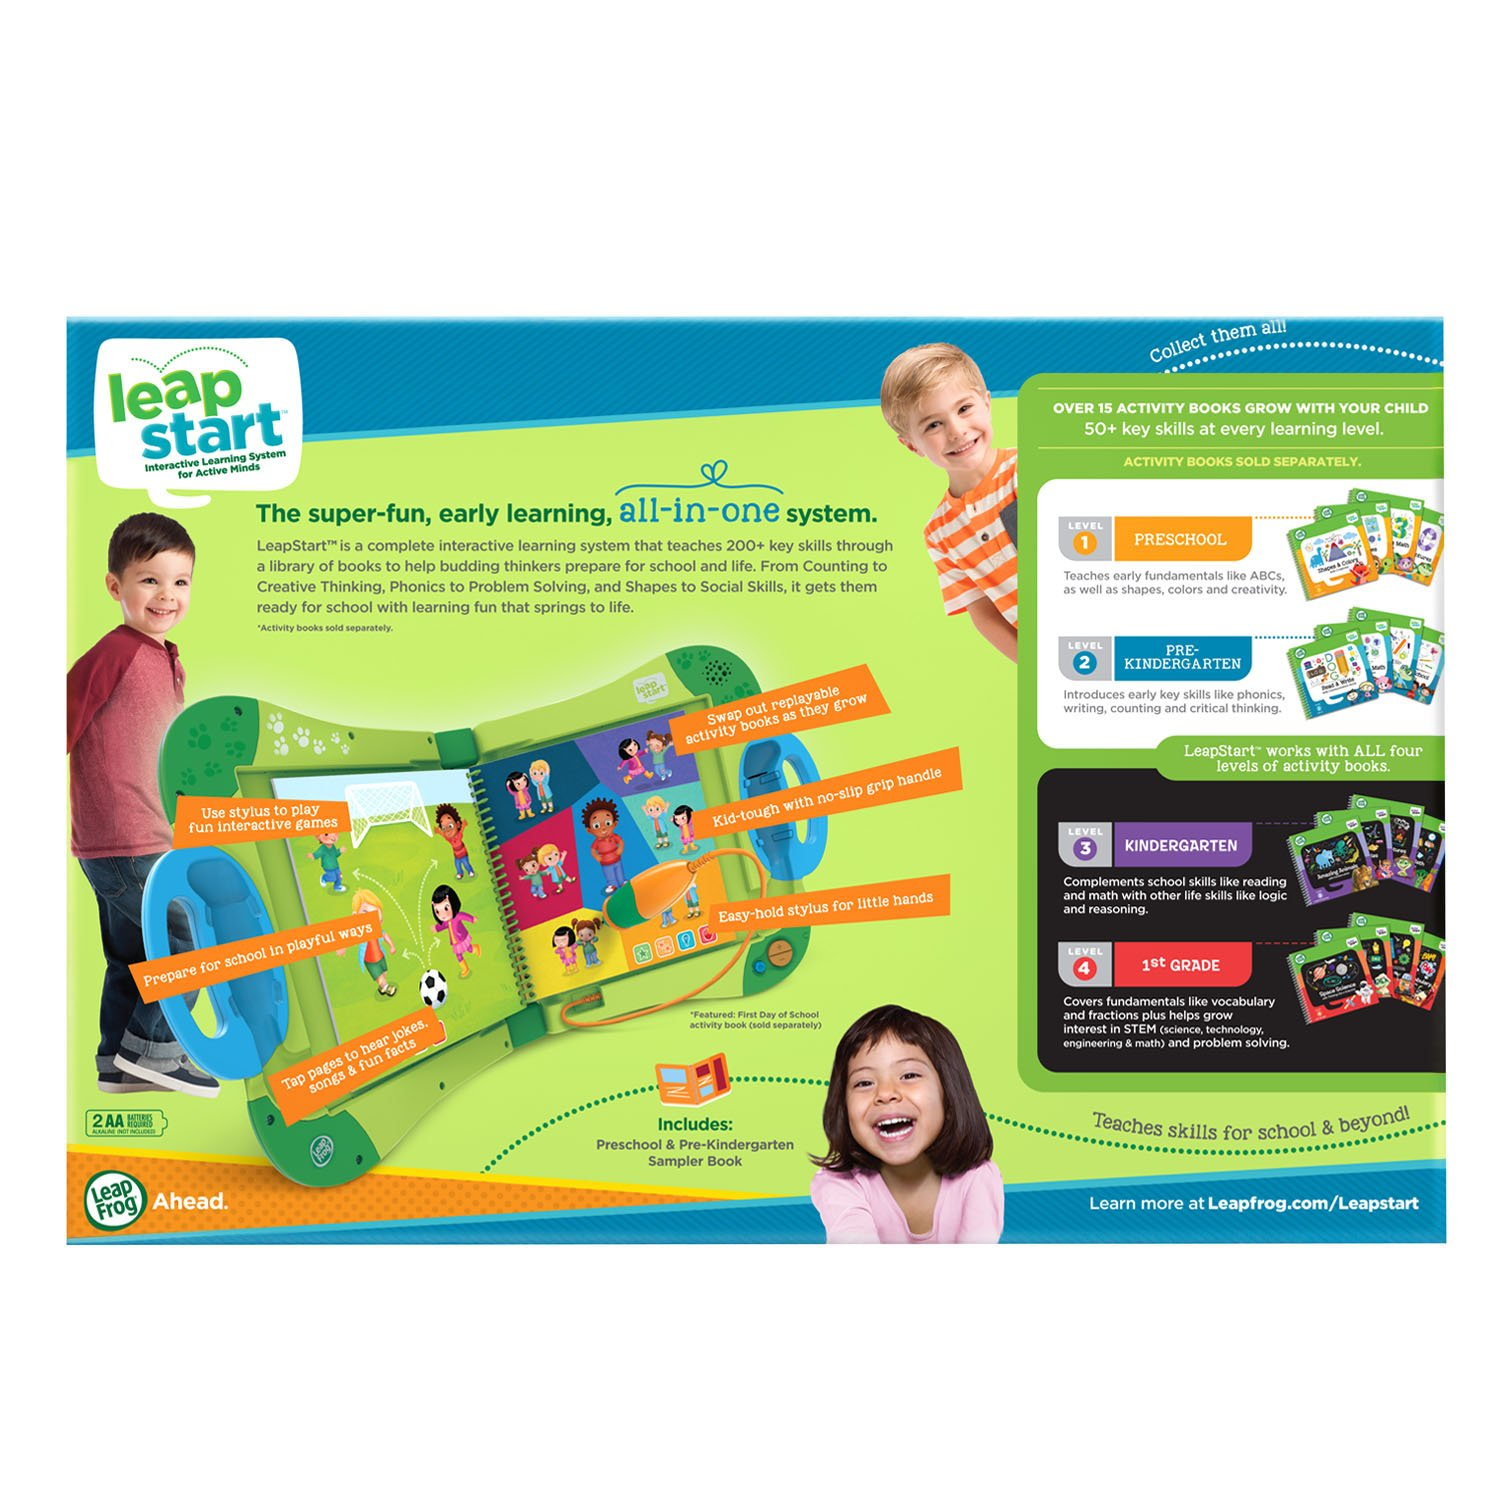 LeapFrog LeapStart Interactive Learning System Preschool and Pre-Kindergarten My Pal Scout by LeapFrog (Image #7)